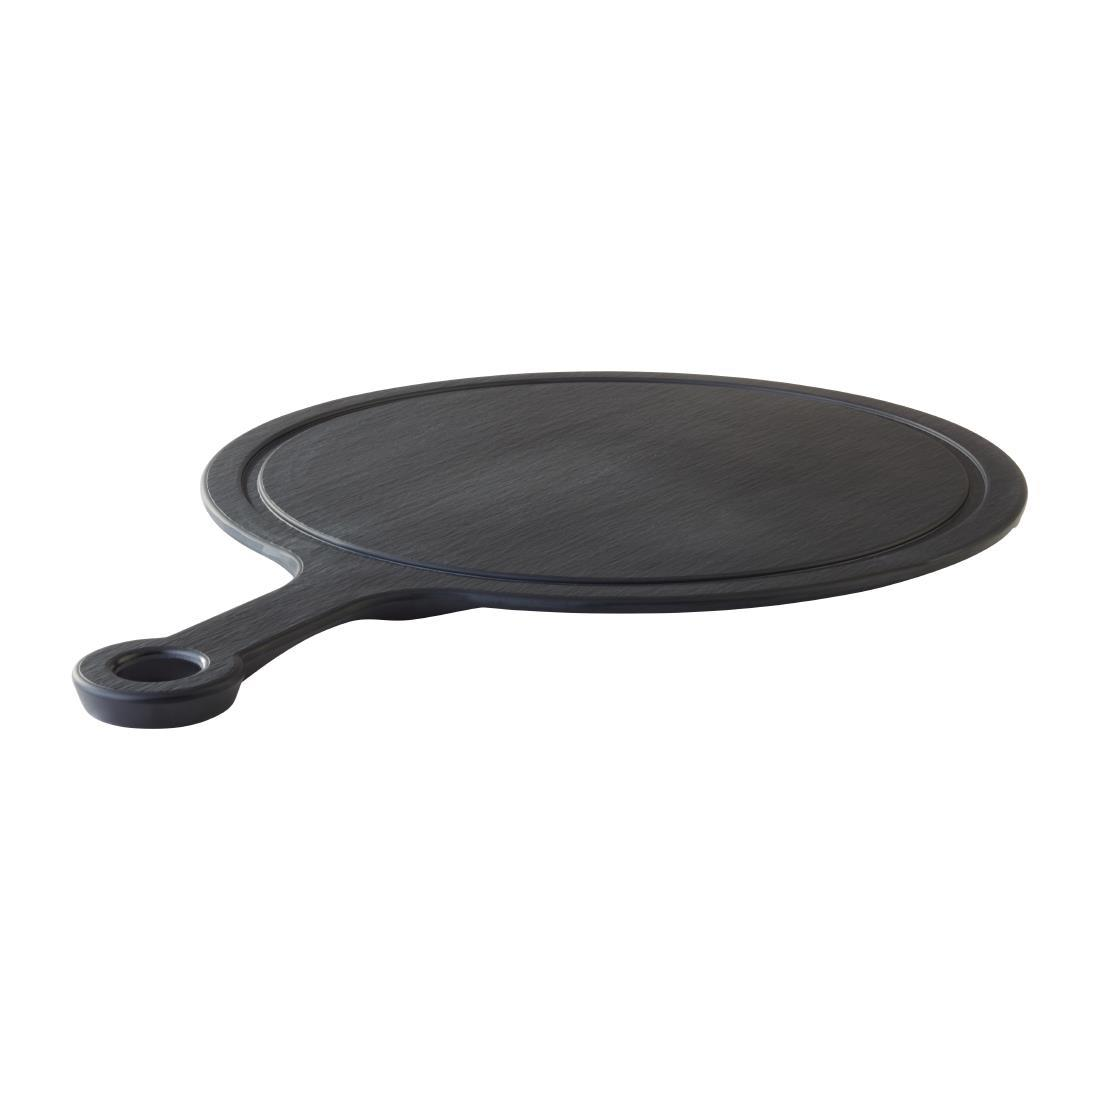 CS126 - APS Slate Melamine Handled Platter 370 mm - Each - CS126